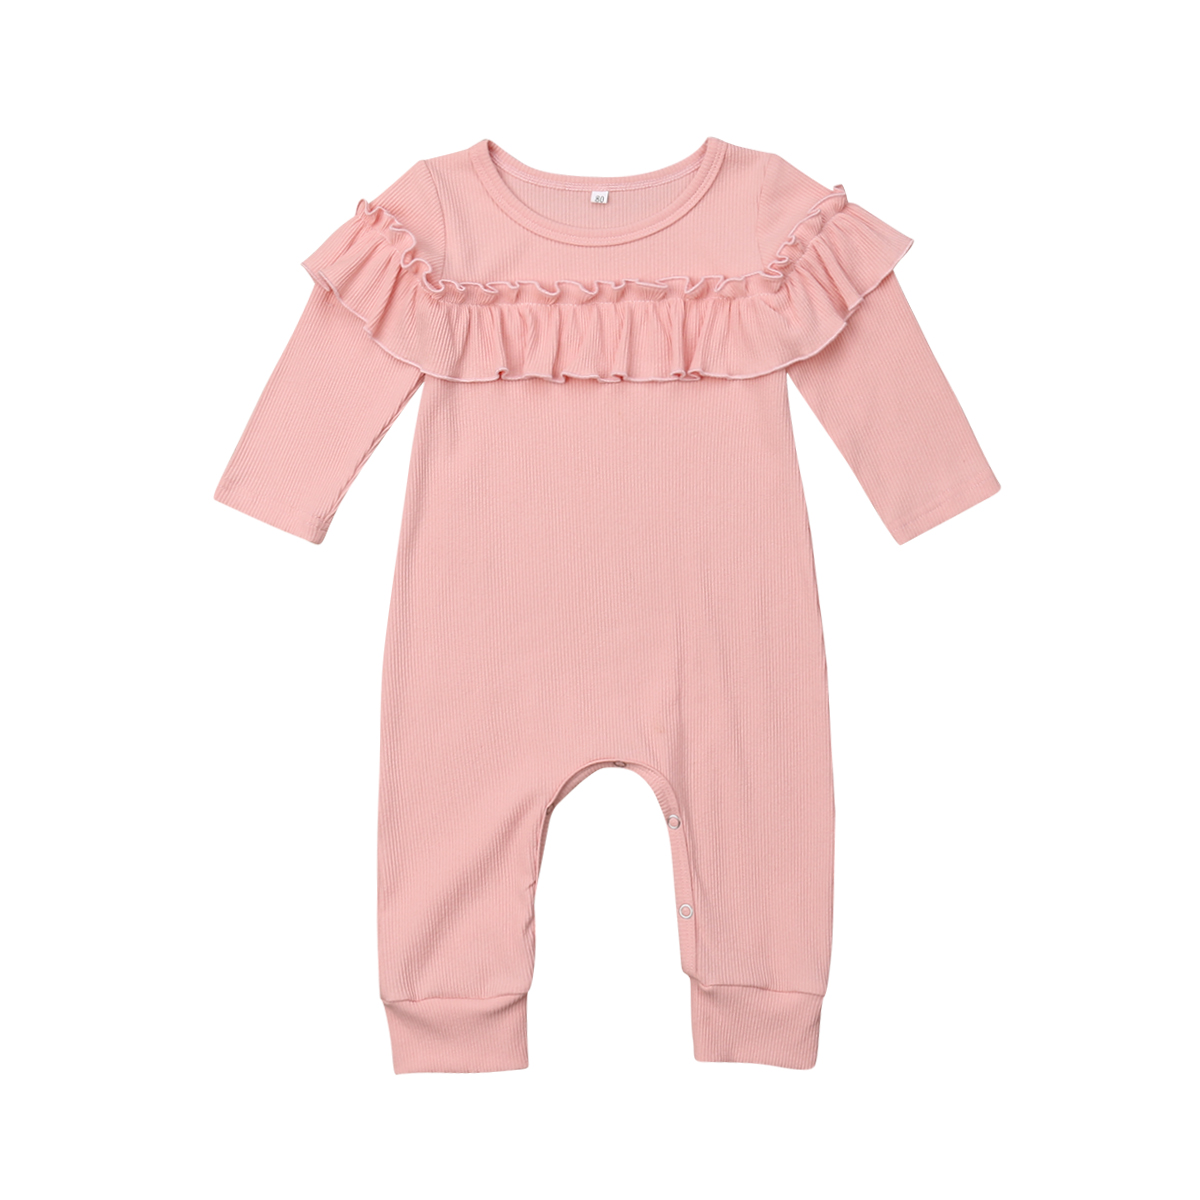 Newborn Baby Girls Cotton   Romper   Long Sleeve Ruffle Solid Jumpsuit Outfits Clothes Playsuit